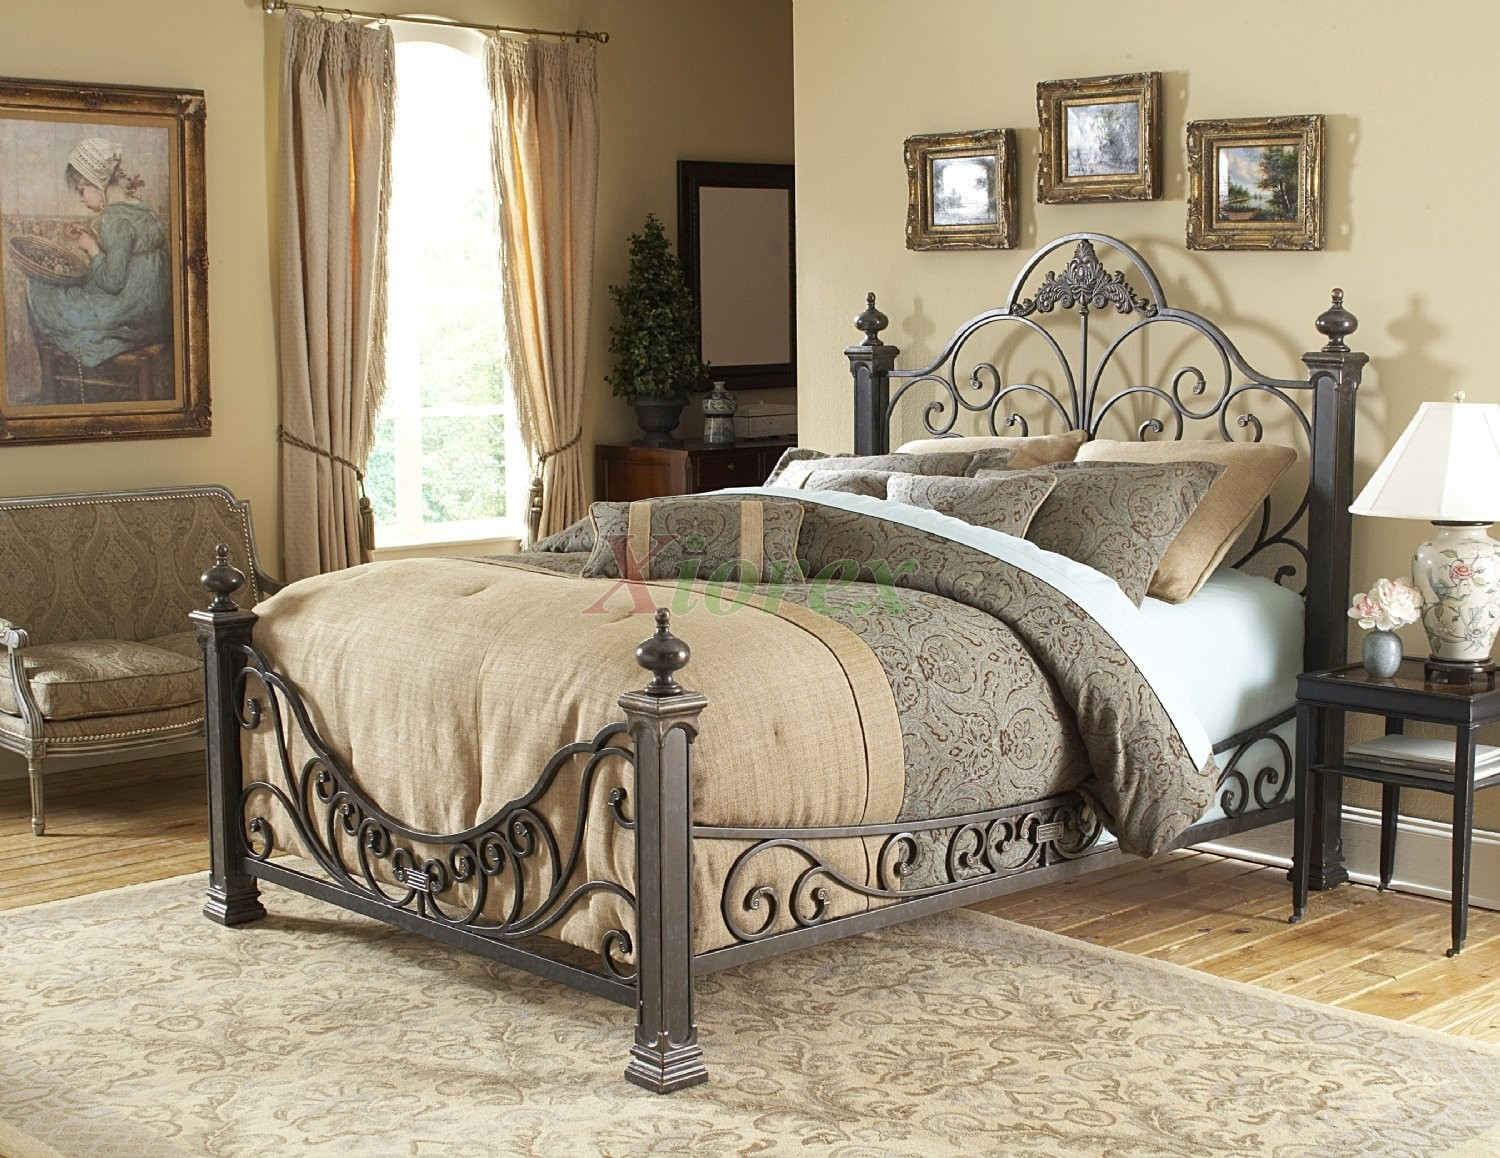 Fashion Bedroom Furniture Classy Baroque Bed  Poster Bed In Gilded Slatefashion Bed Group  Xiorex Decorating Design